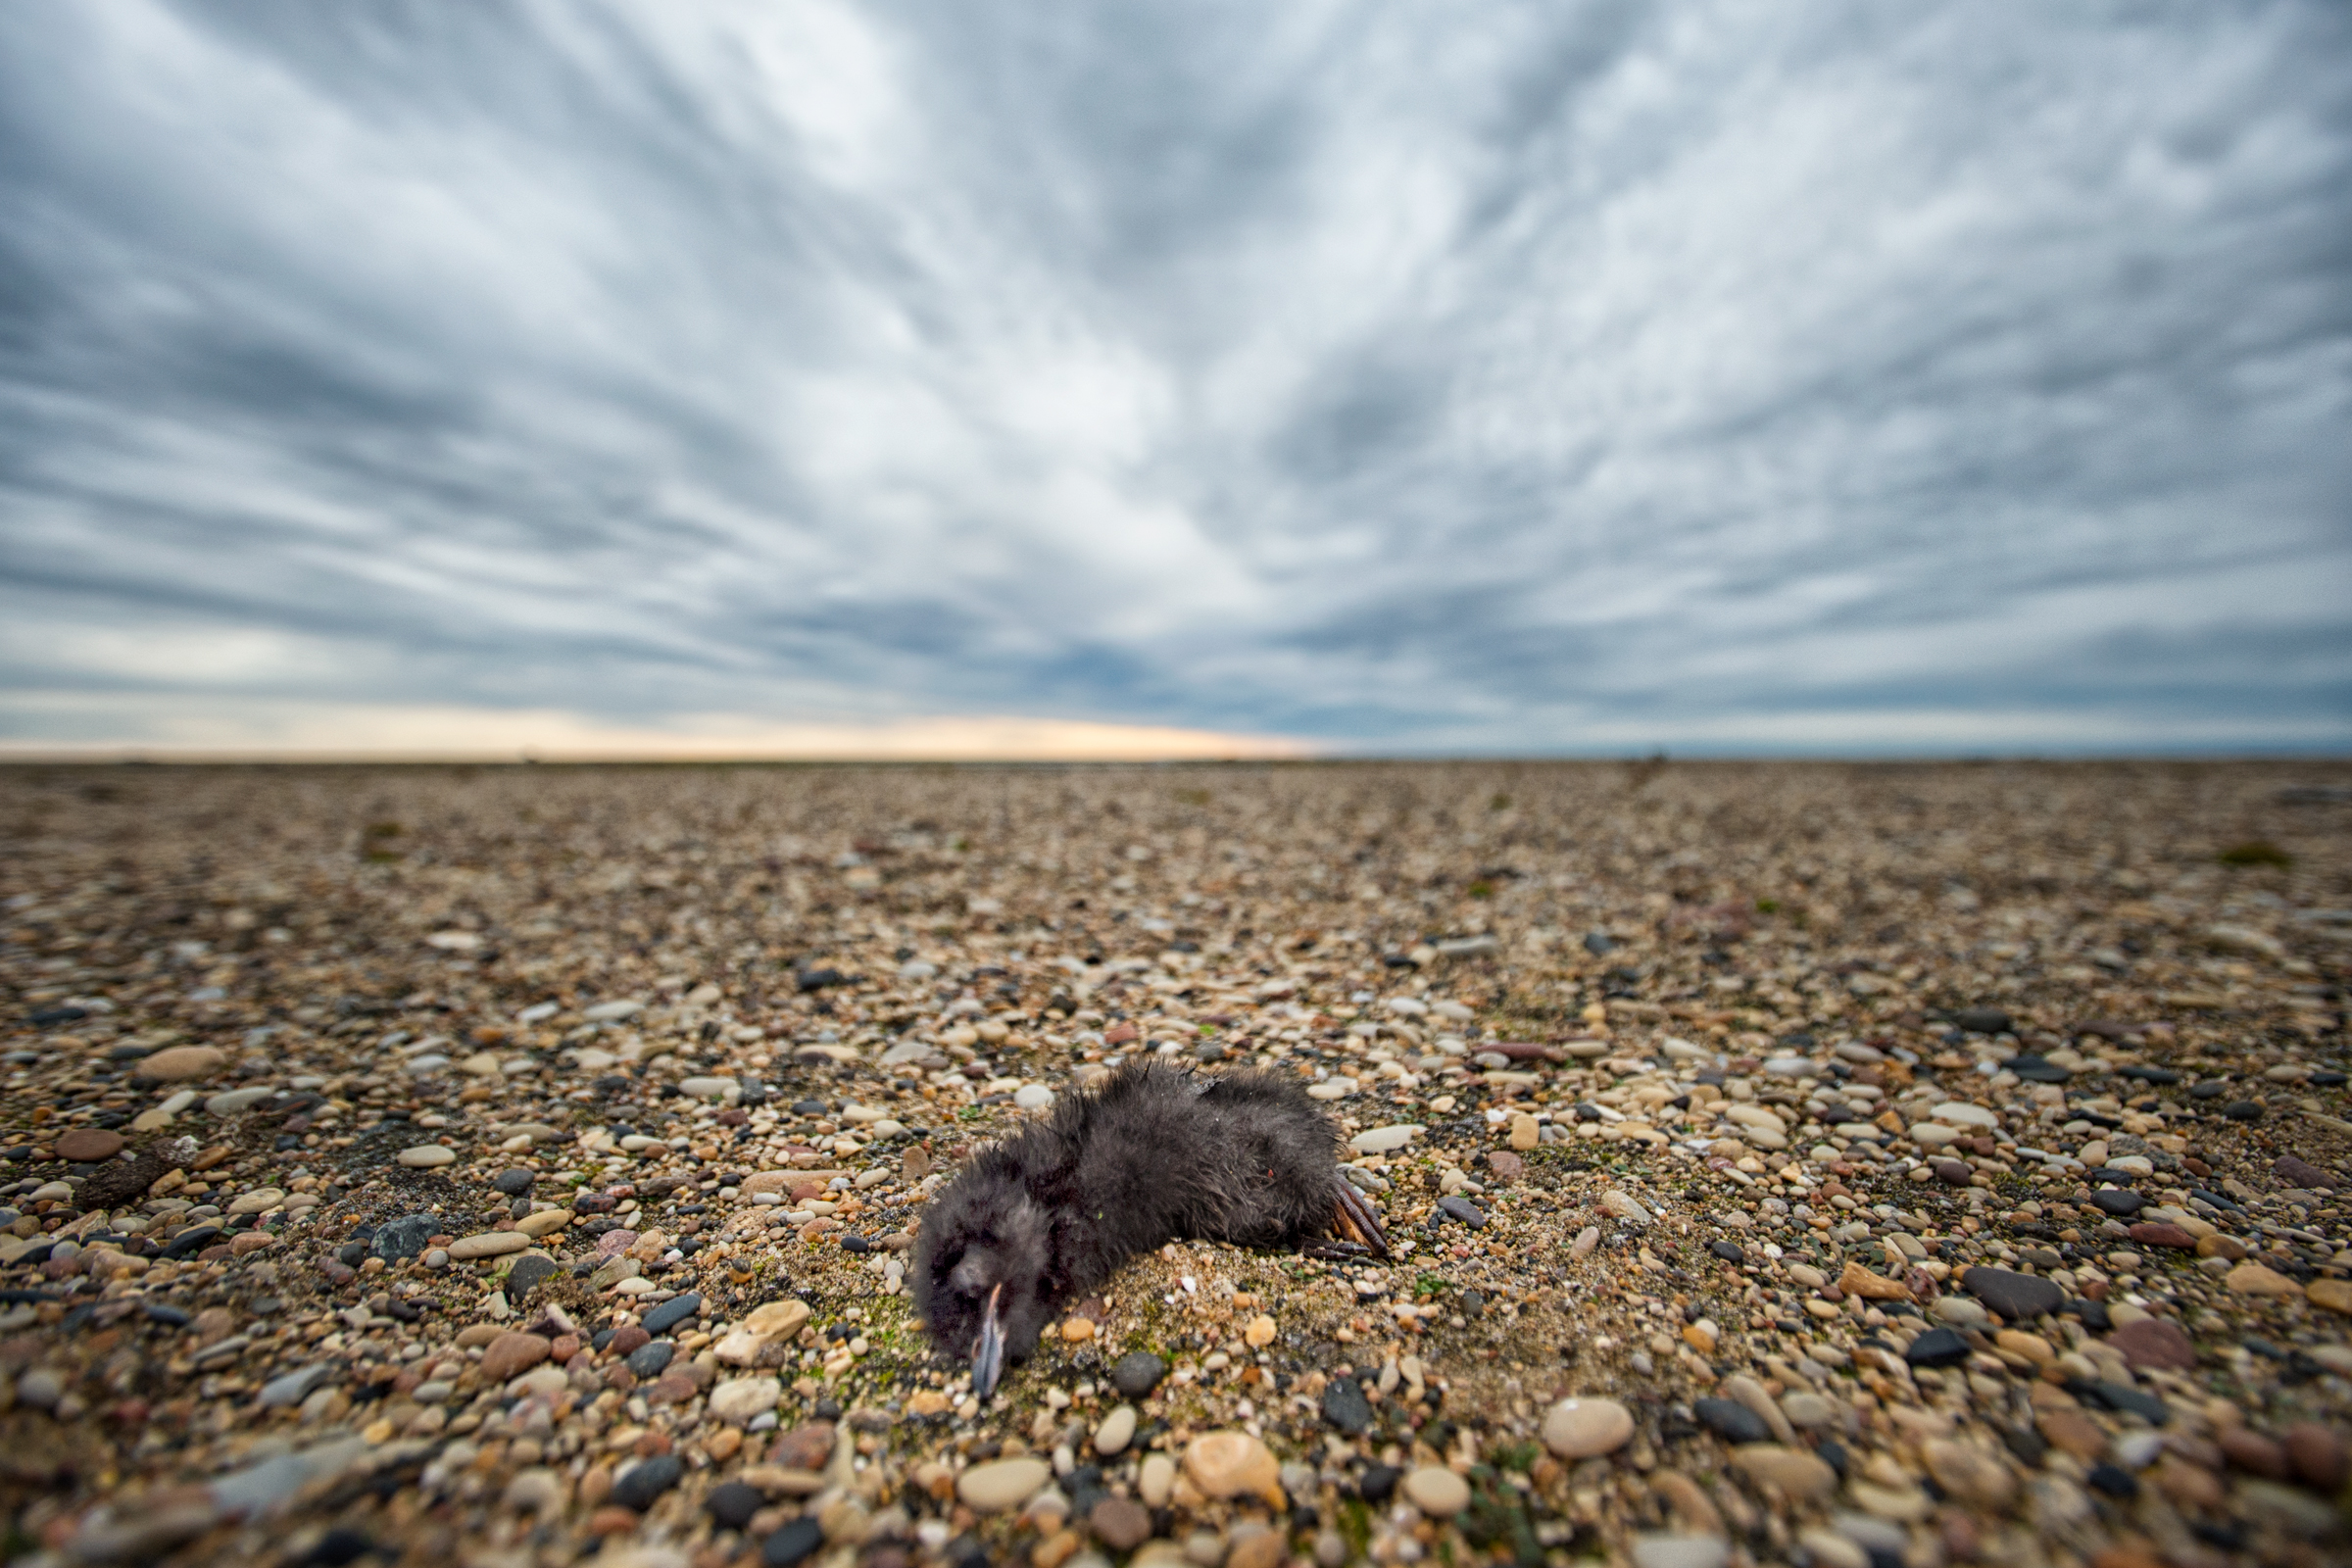 An infinite sky looms over the frail body of a chick, which lies dead on the gravel after being removed from its nest. Out of 120 chicks that hatched this summer, only 45 fledged. Peter Mather